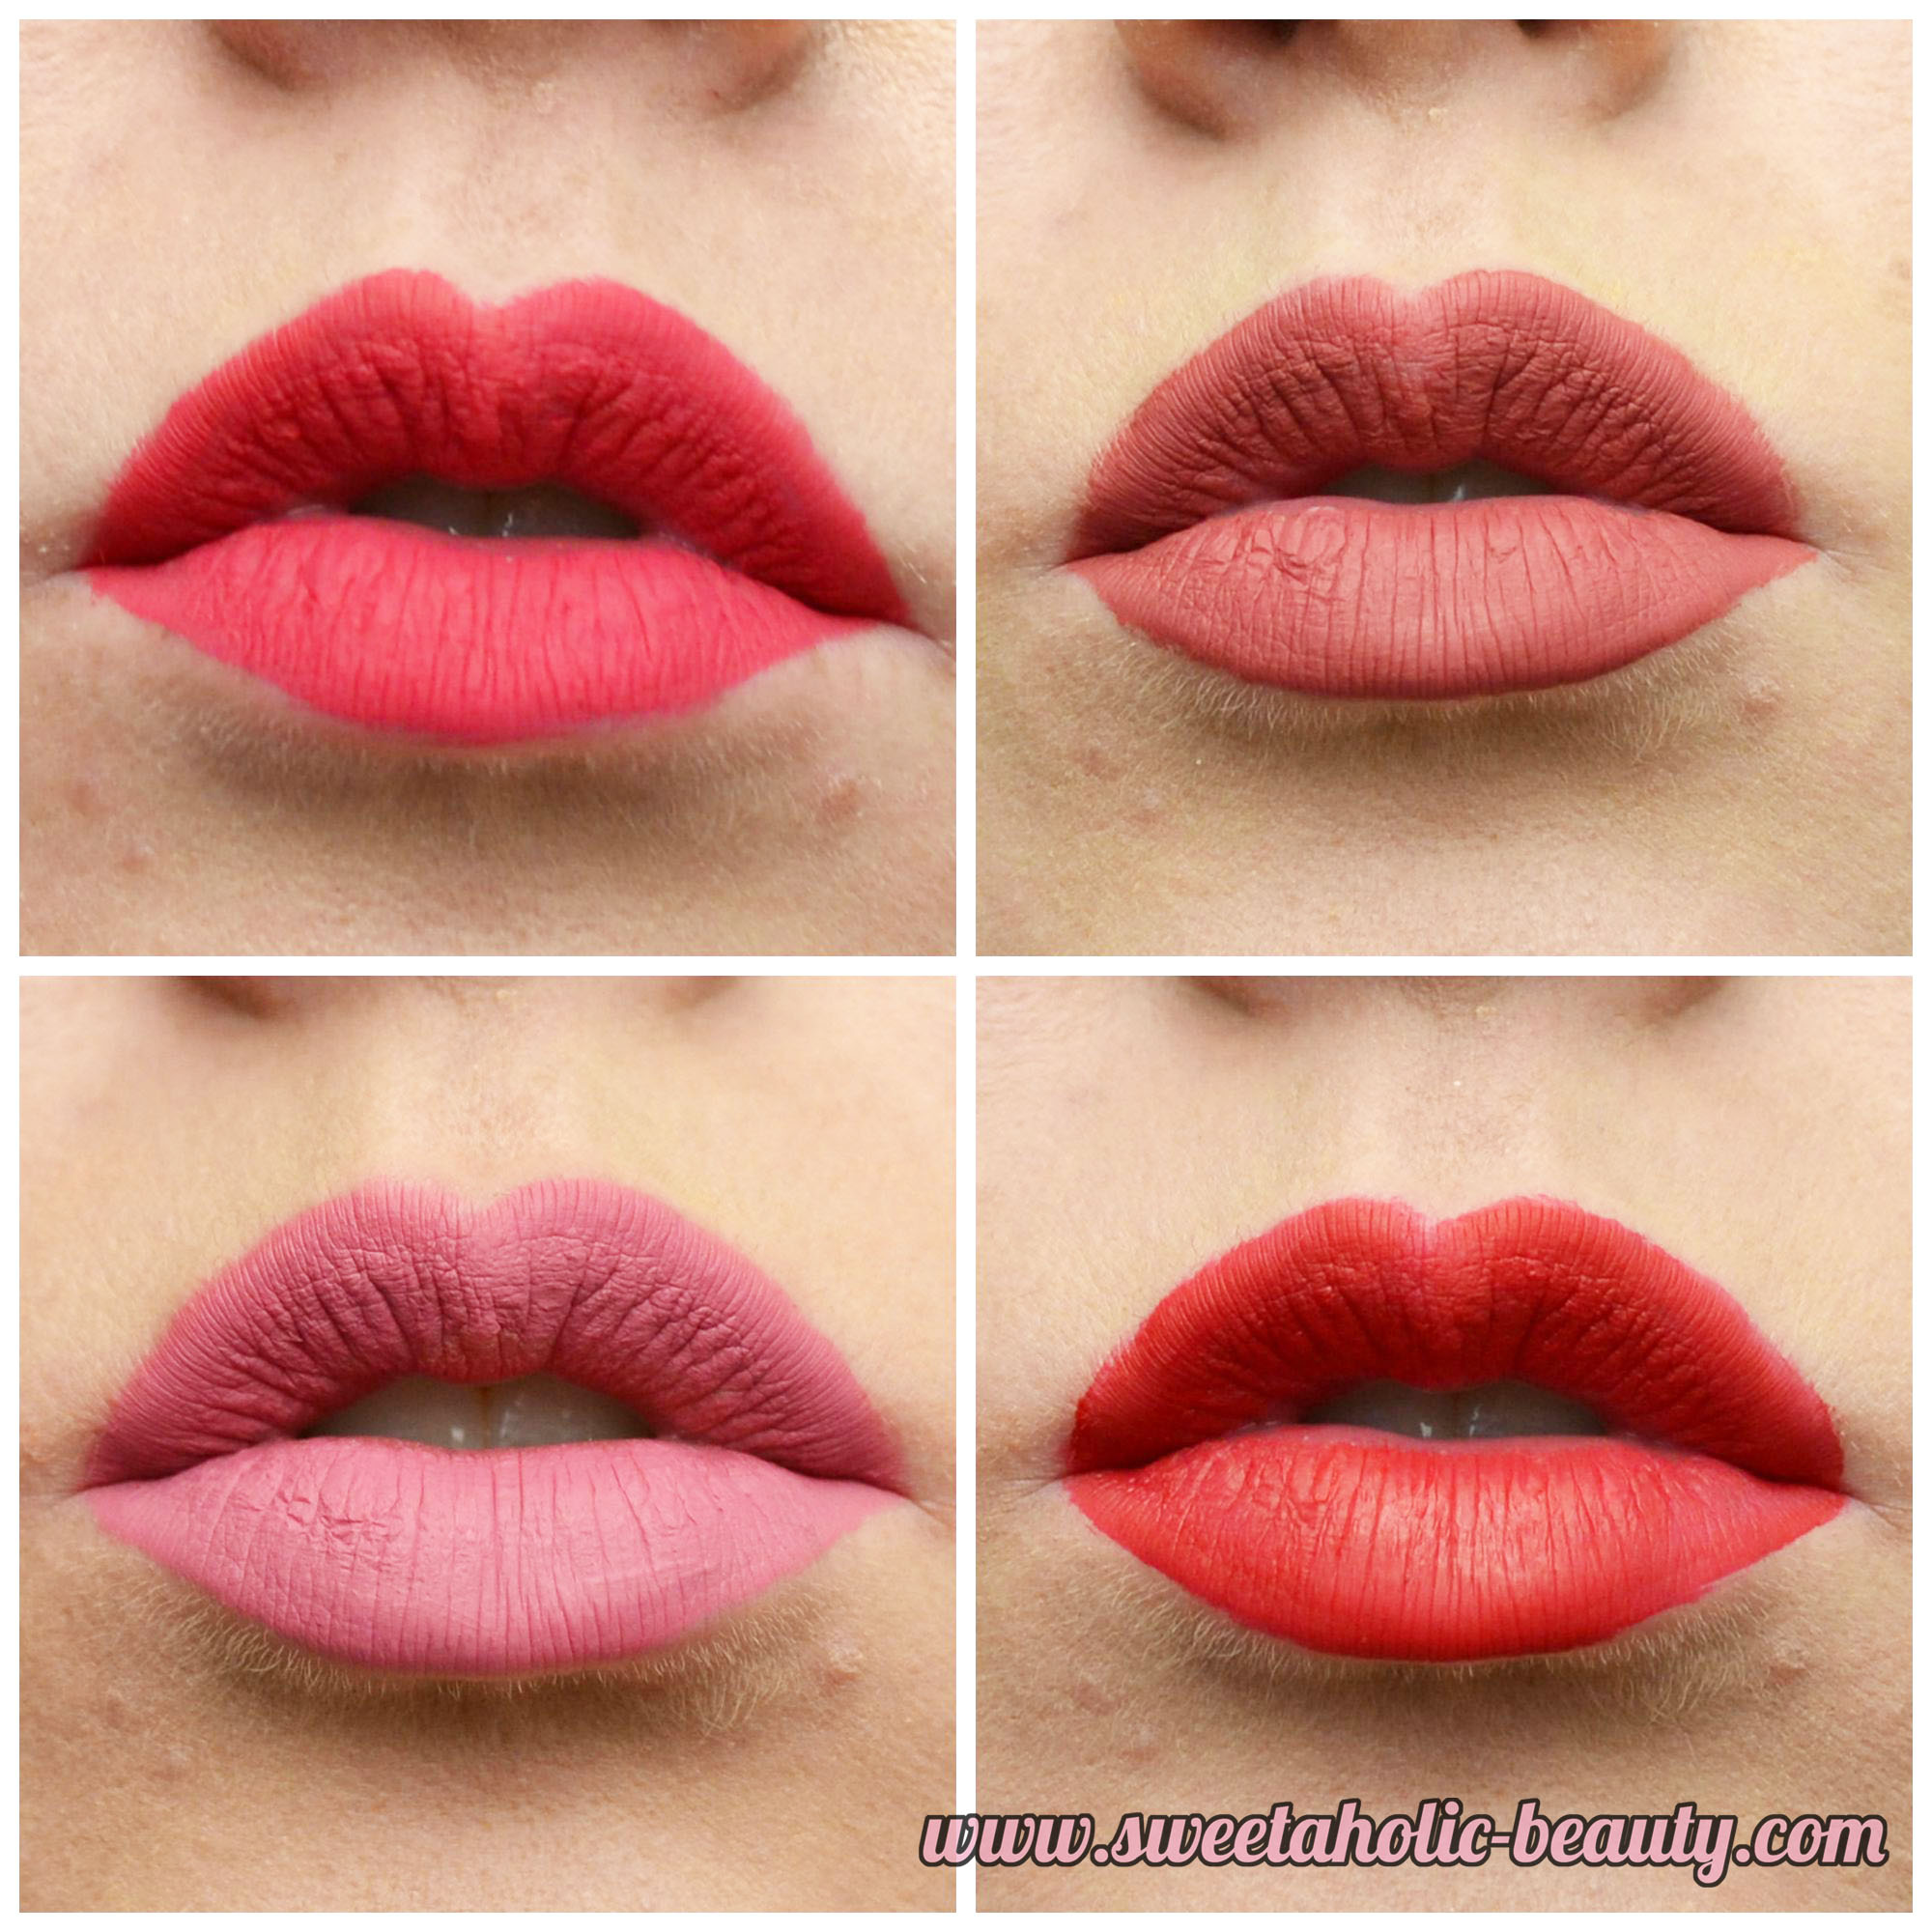 Klara Cosmetics Kiss Proof Lips Collection Review & Swatches - Sweetaholic Beauty